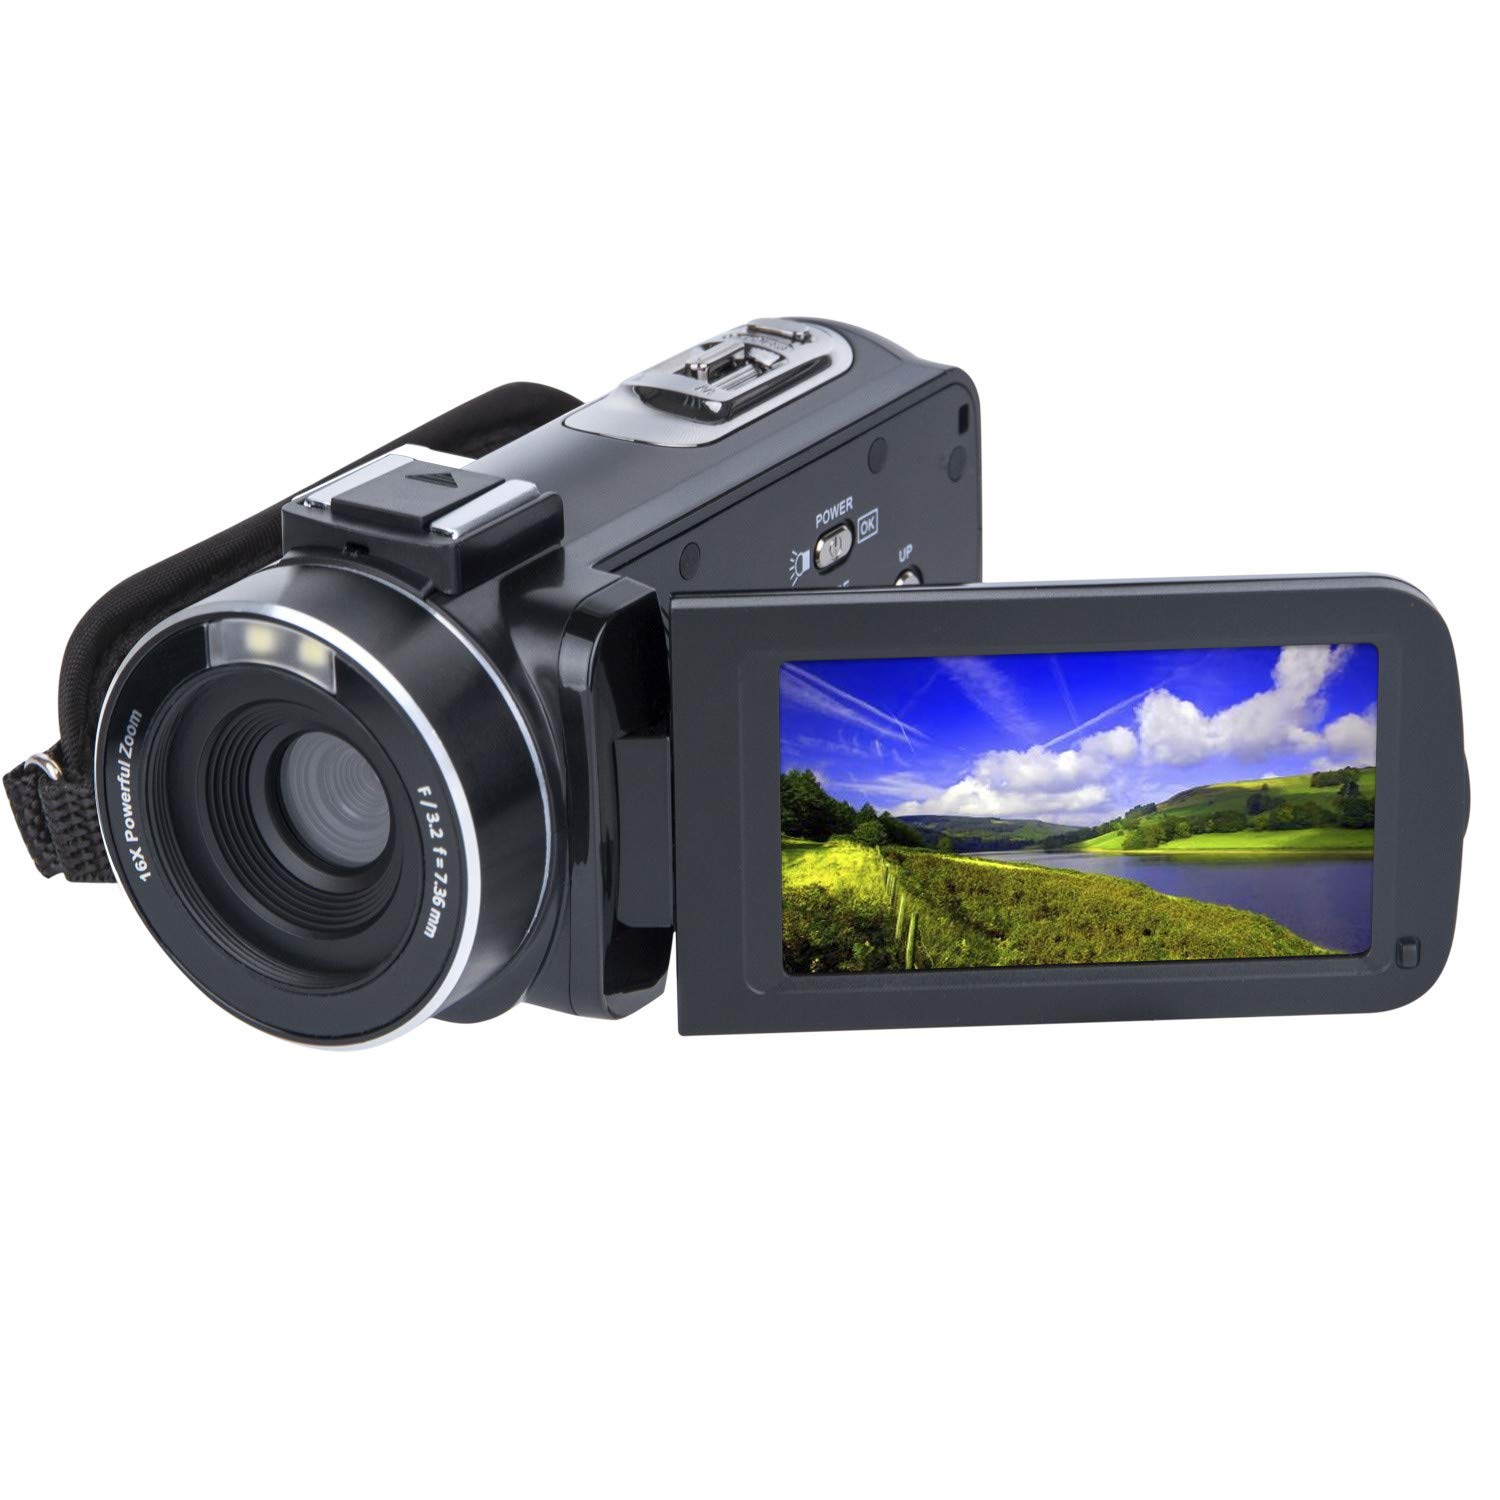 Video Camera Camcorder SOSUN HD 1080P 24.0MP 3.0 inch LCD 270 Degrees Rotatable Screen 16X Digital Zoom Camera Recorder 2 Batteries(301S-Plus) by SOSUN